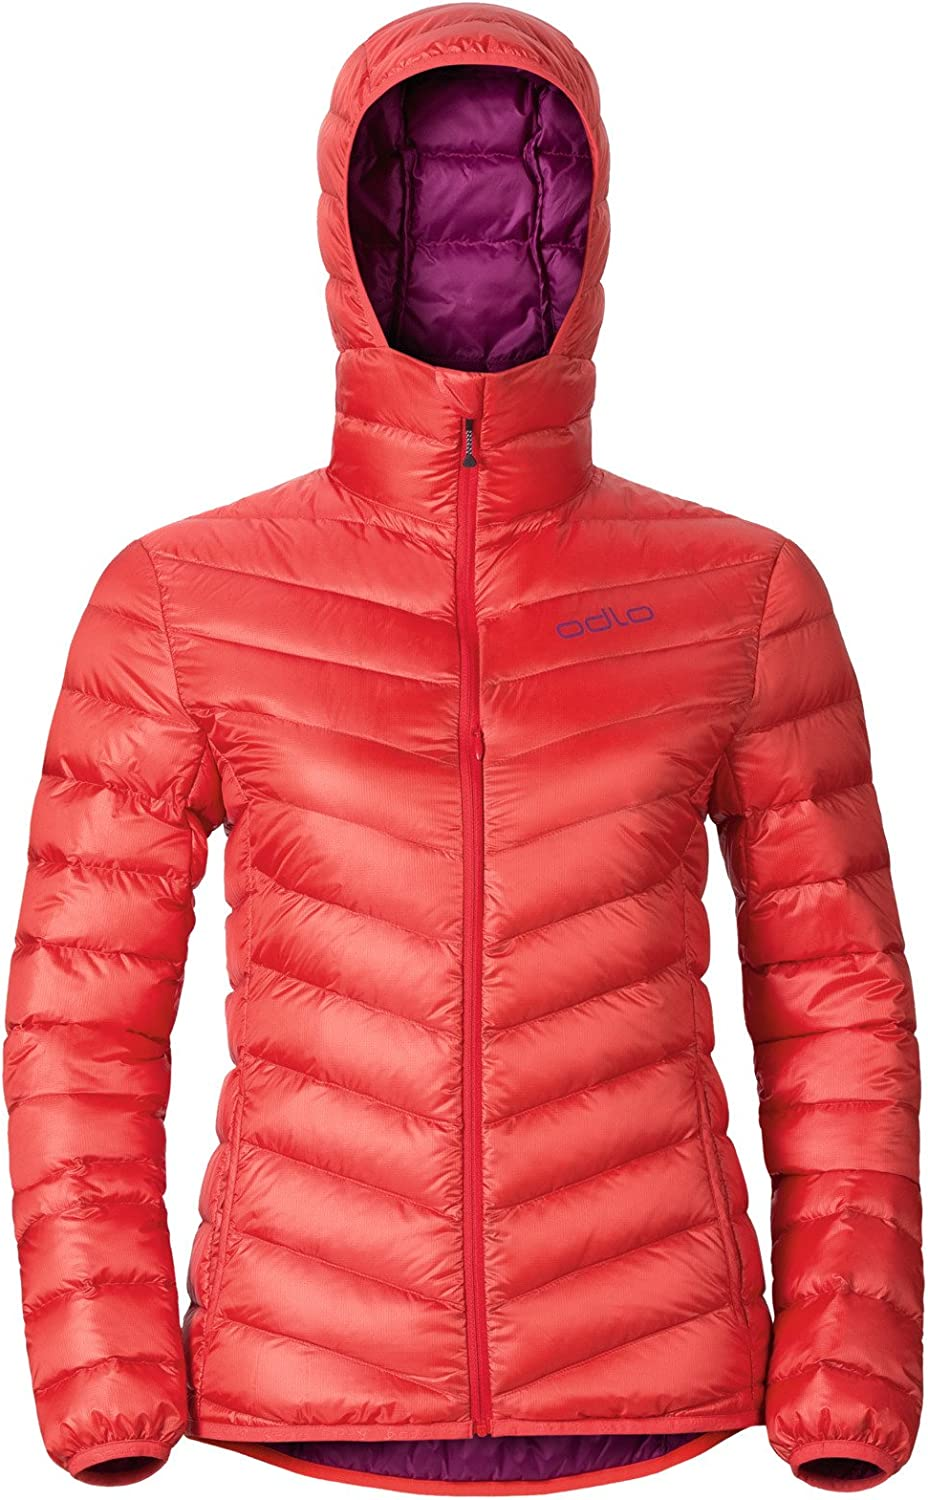 Odlo Women's Air Cocoon Down Insulated Jacket